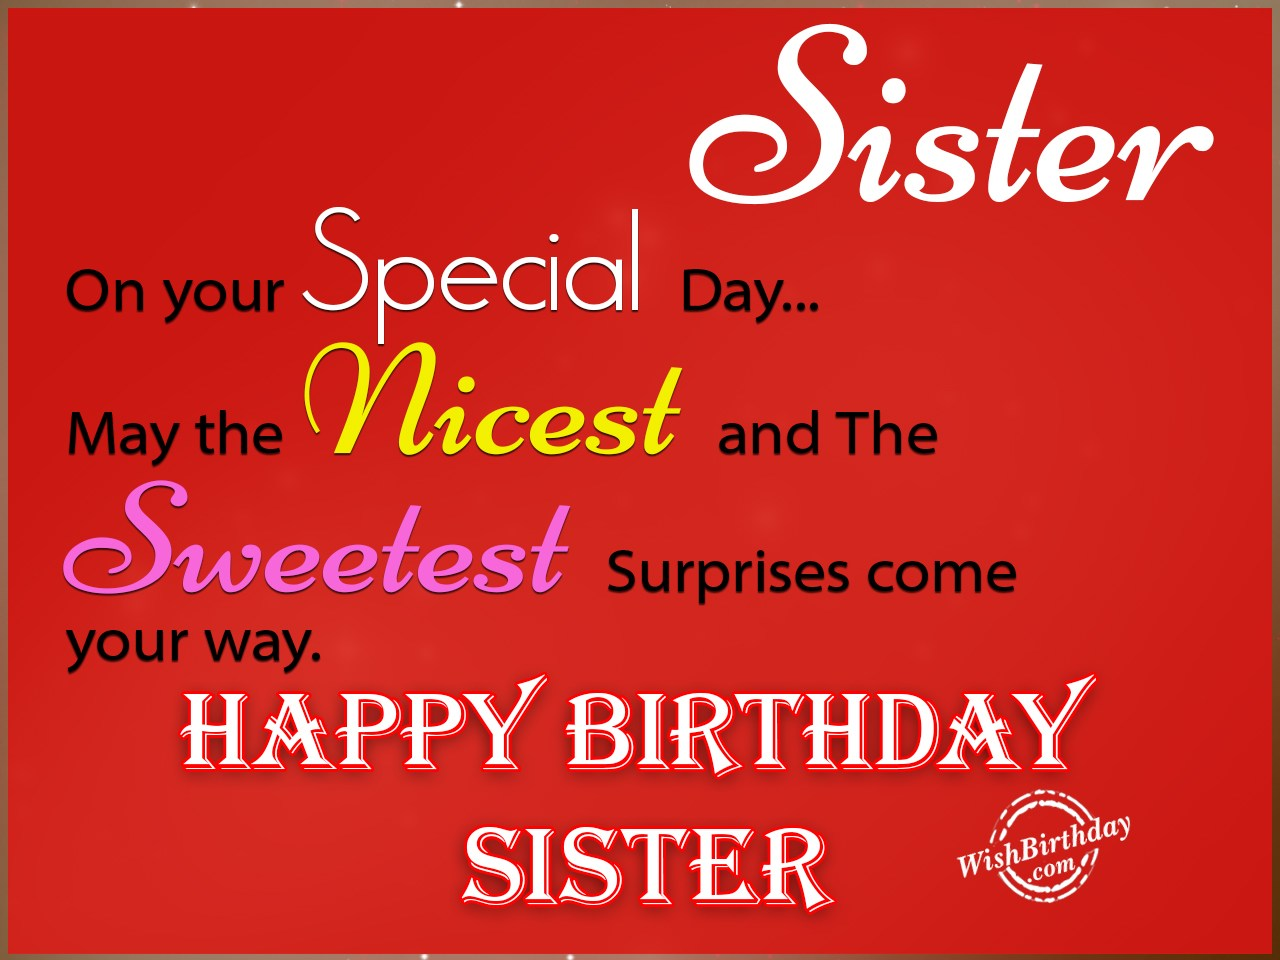 Birthday Wishes For Sister Birthday Images Pictures – Happy Birthday Greetings for Sister